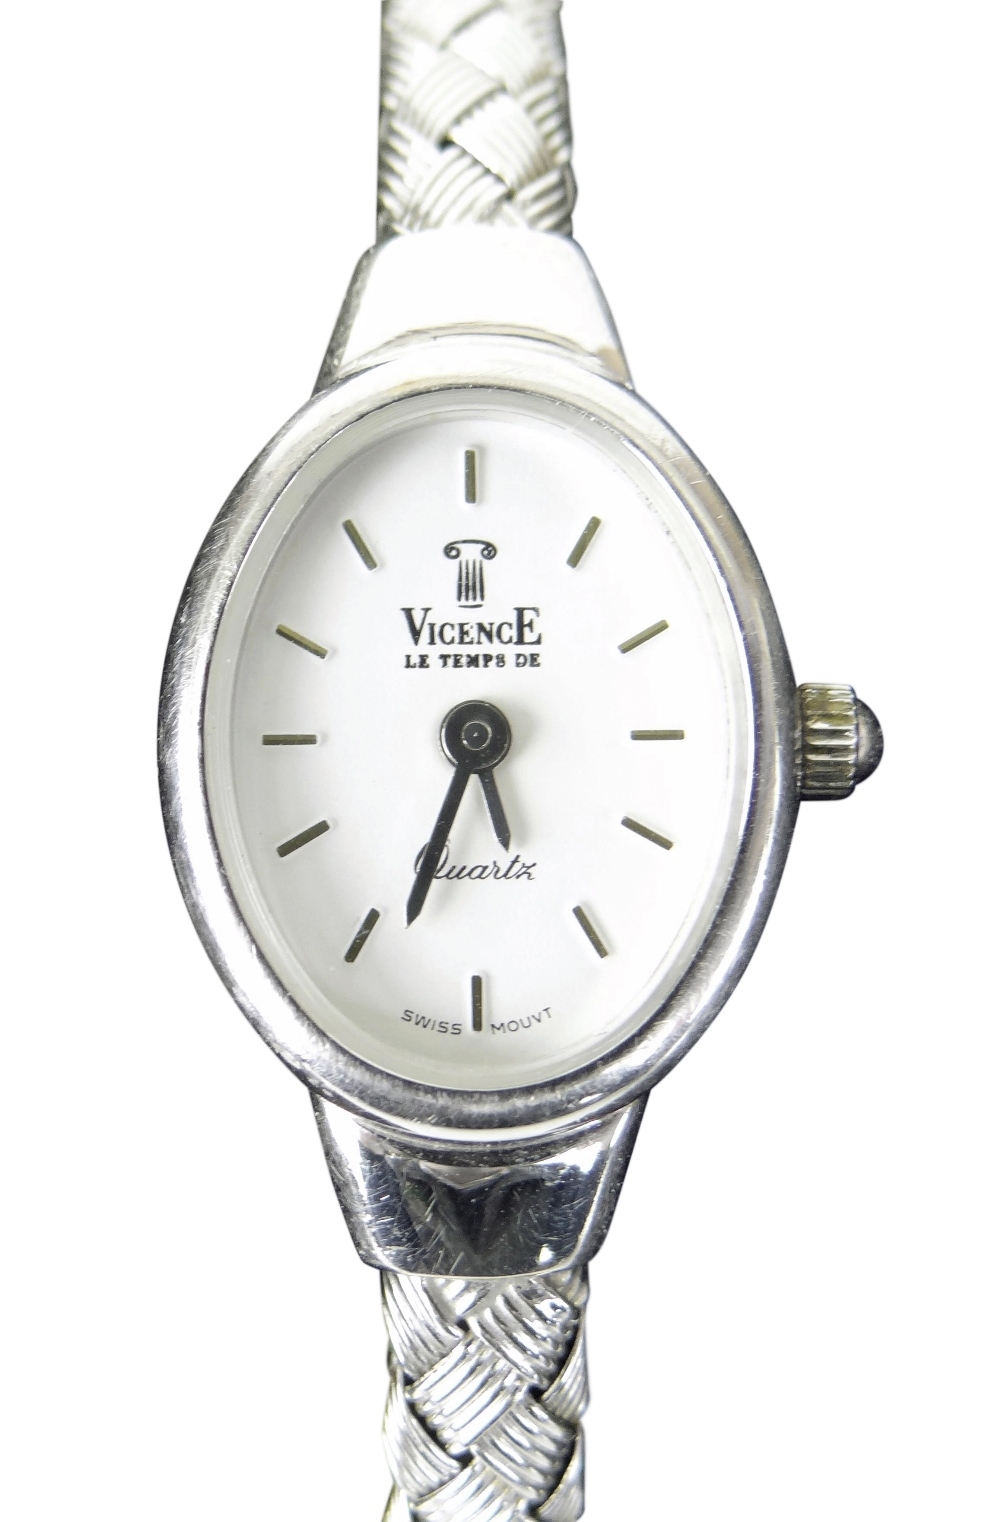 14K WHITE GOLD LADIES VICENCE WRISTWATCH HAVING OVAL DIAL and integrated 14k white gold bracelet.